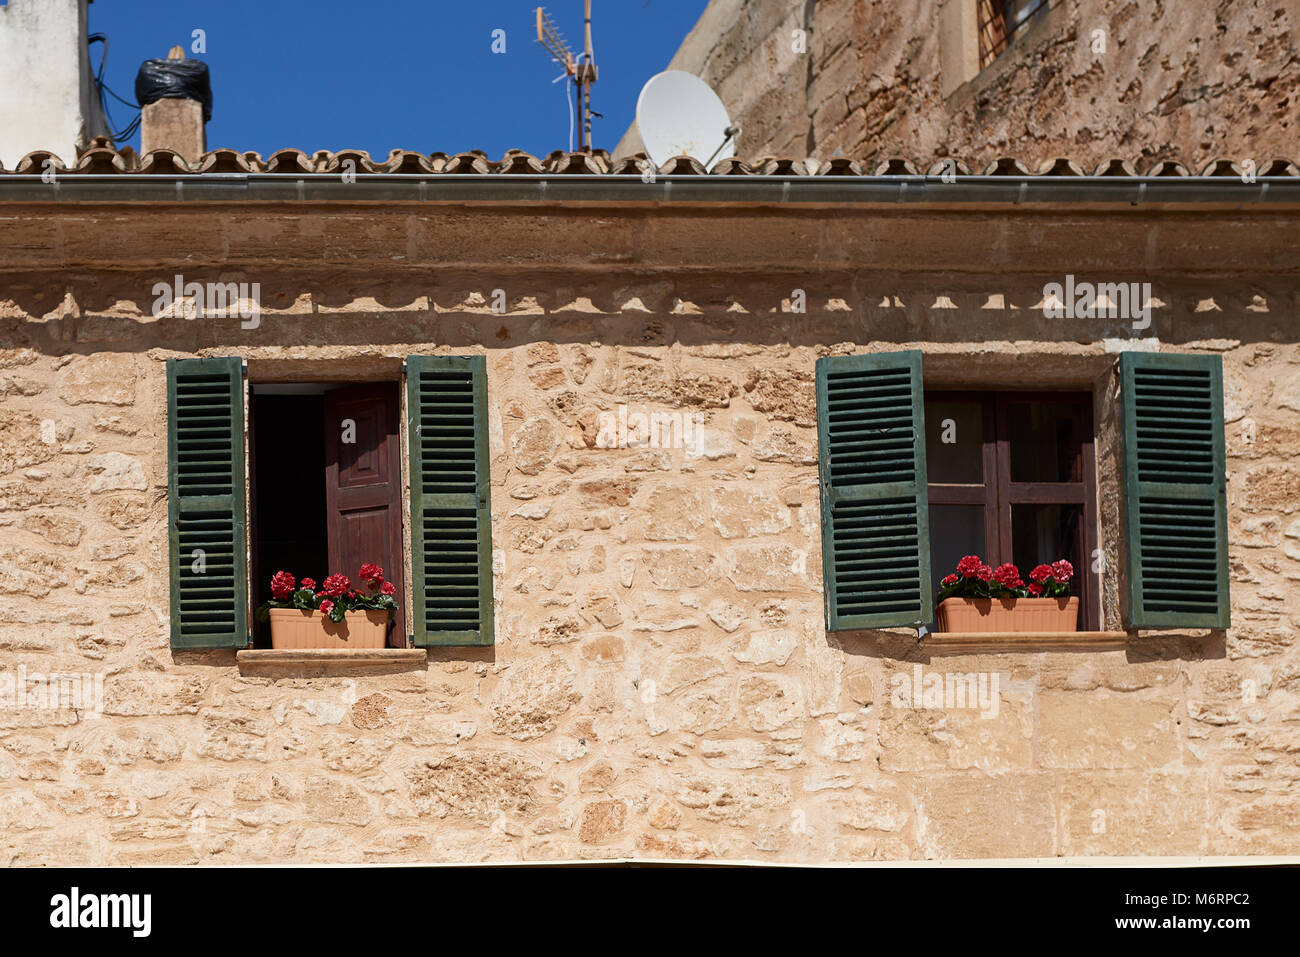 Window Boxes With Colorful Flowers In The Open Windows Of An Old Apartment  Or House With